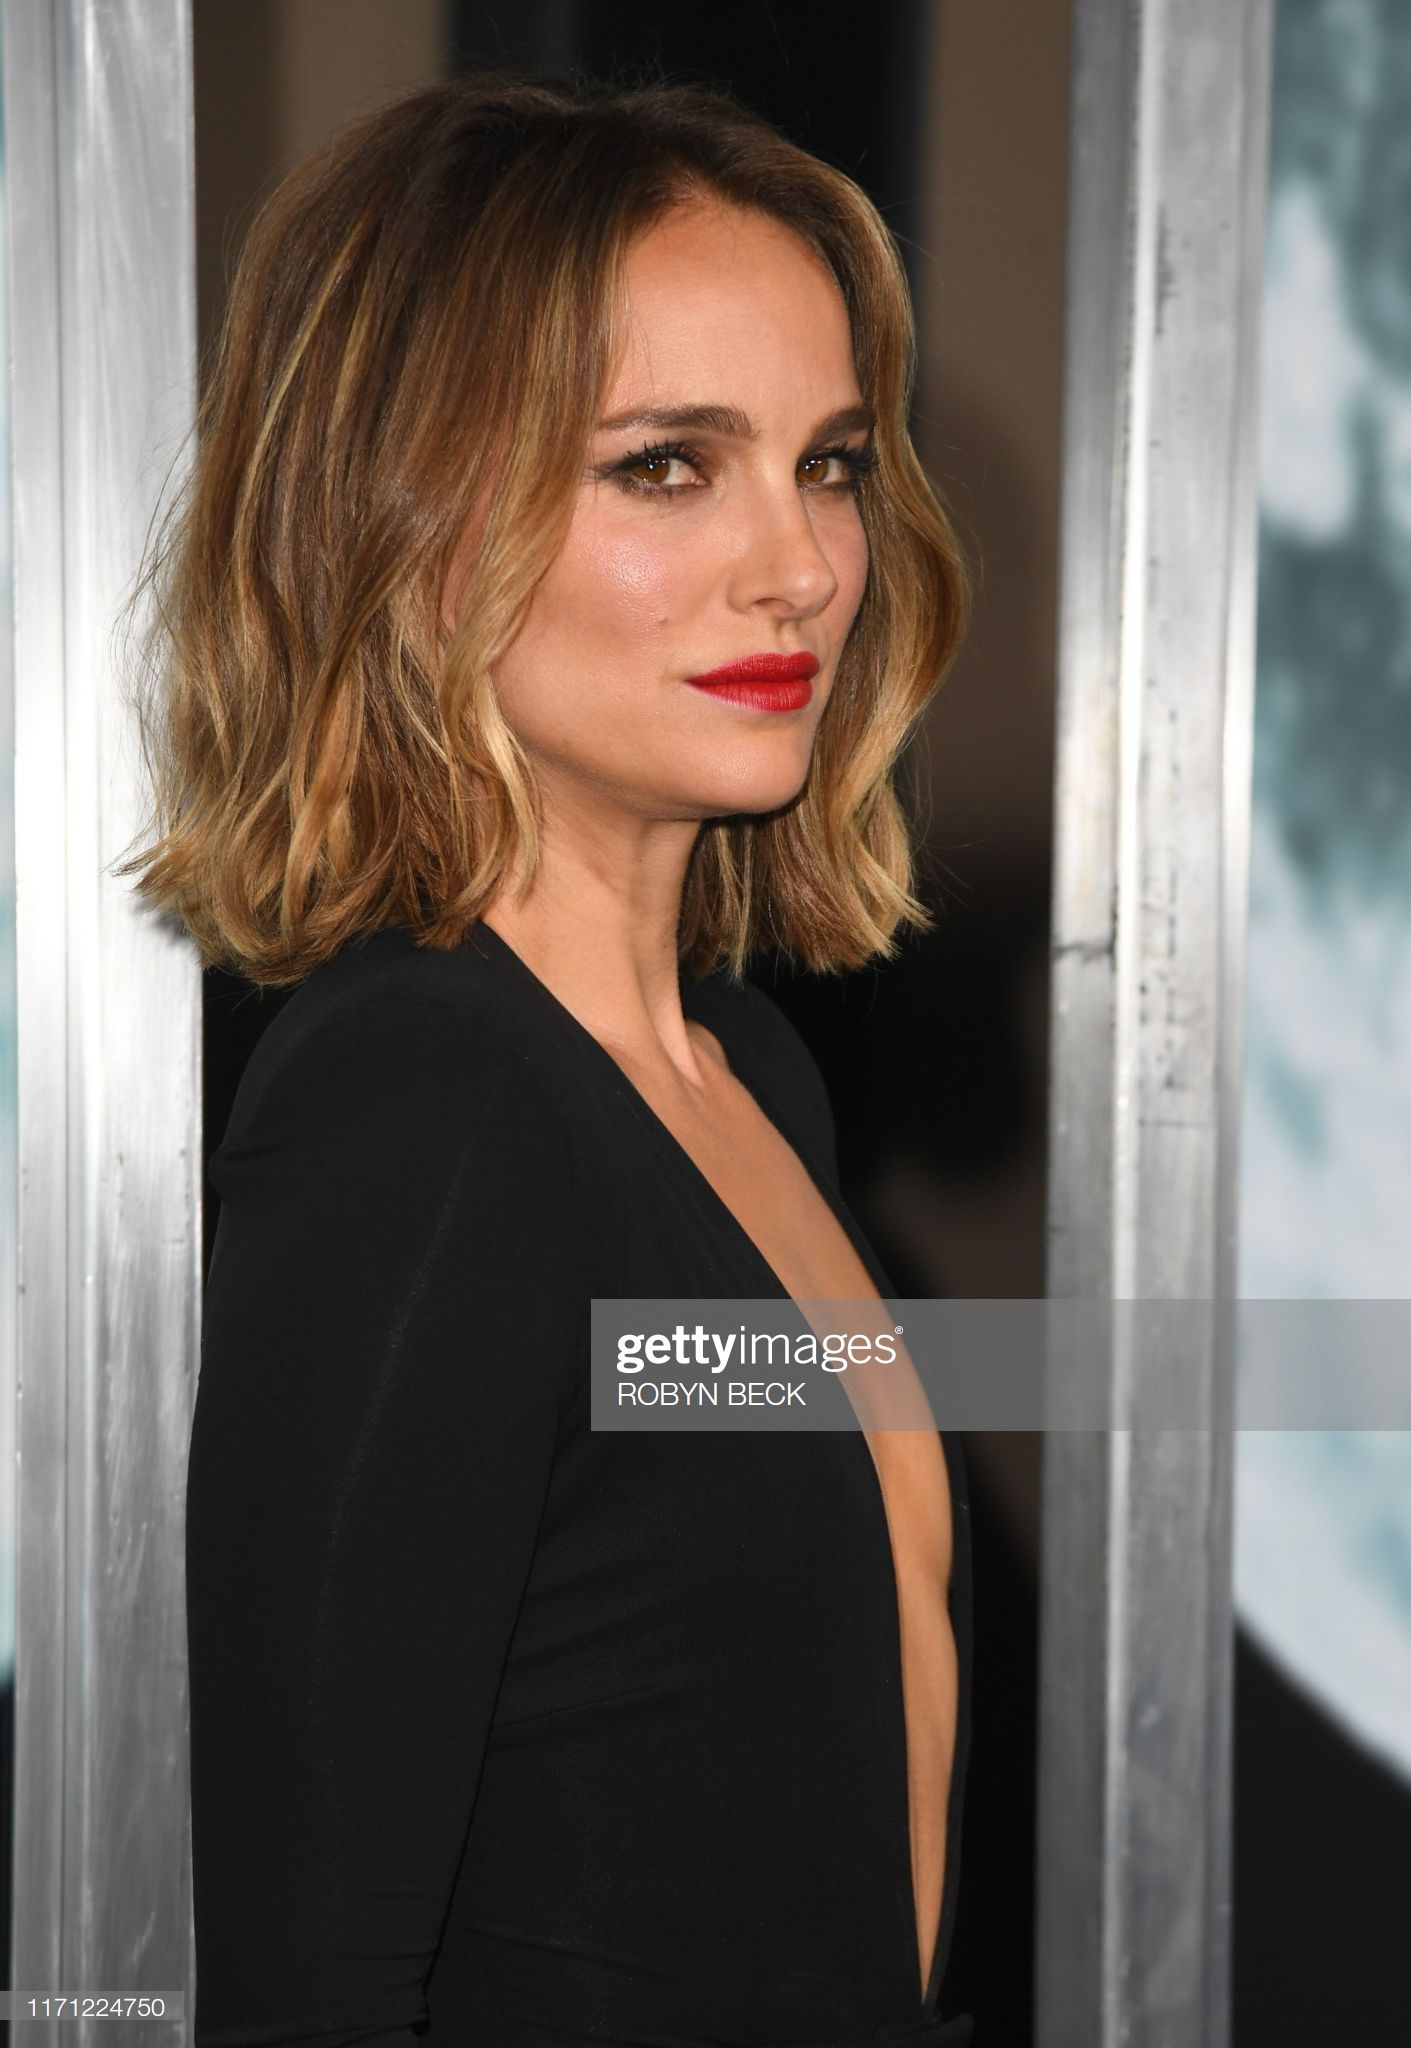 Natalie Portman Attended The Premiere Of Lucy In The Sky In La On September 25th 2019 Coupe De Cheveux Tendance Cheveux Mi Long Cheveux